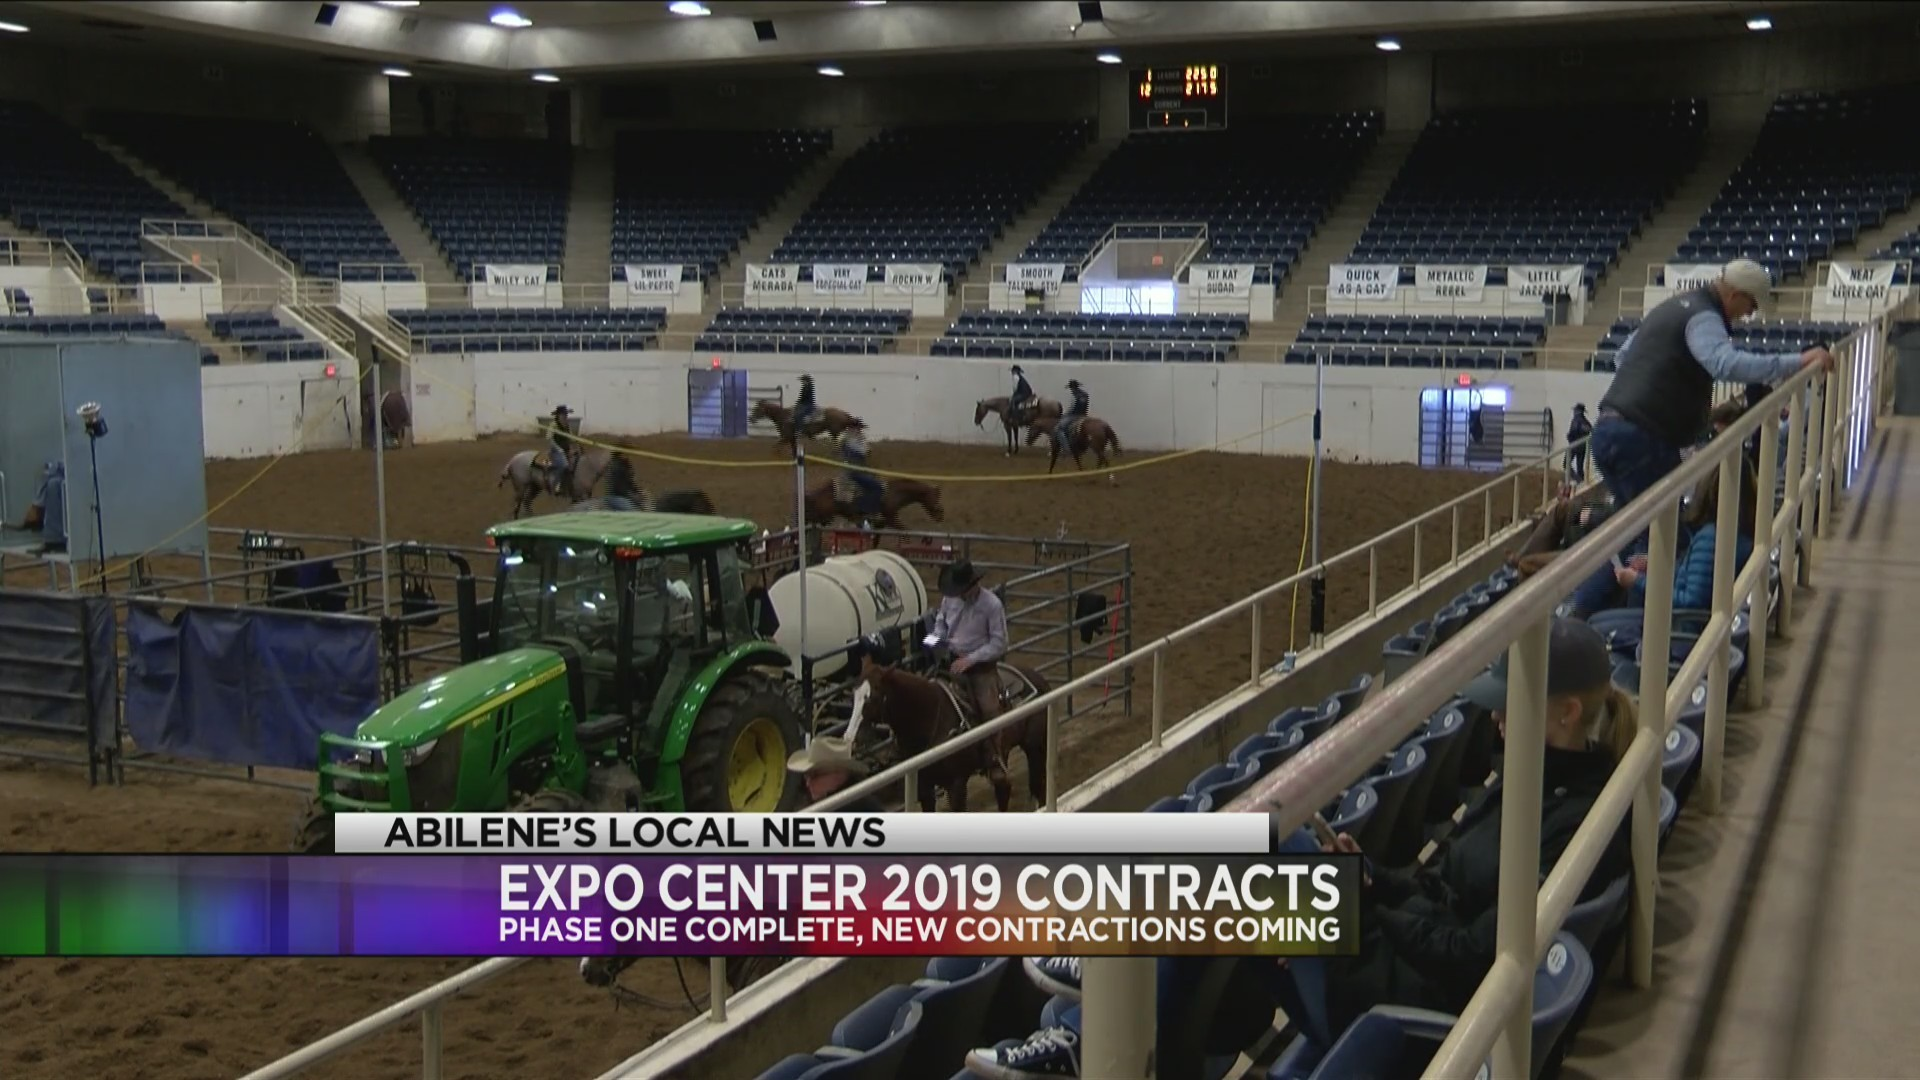 Expo_Center_2019_Contracts_0_20190108004135